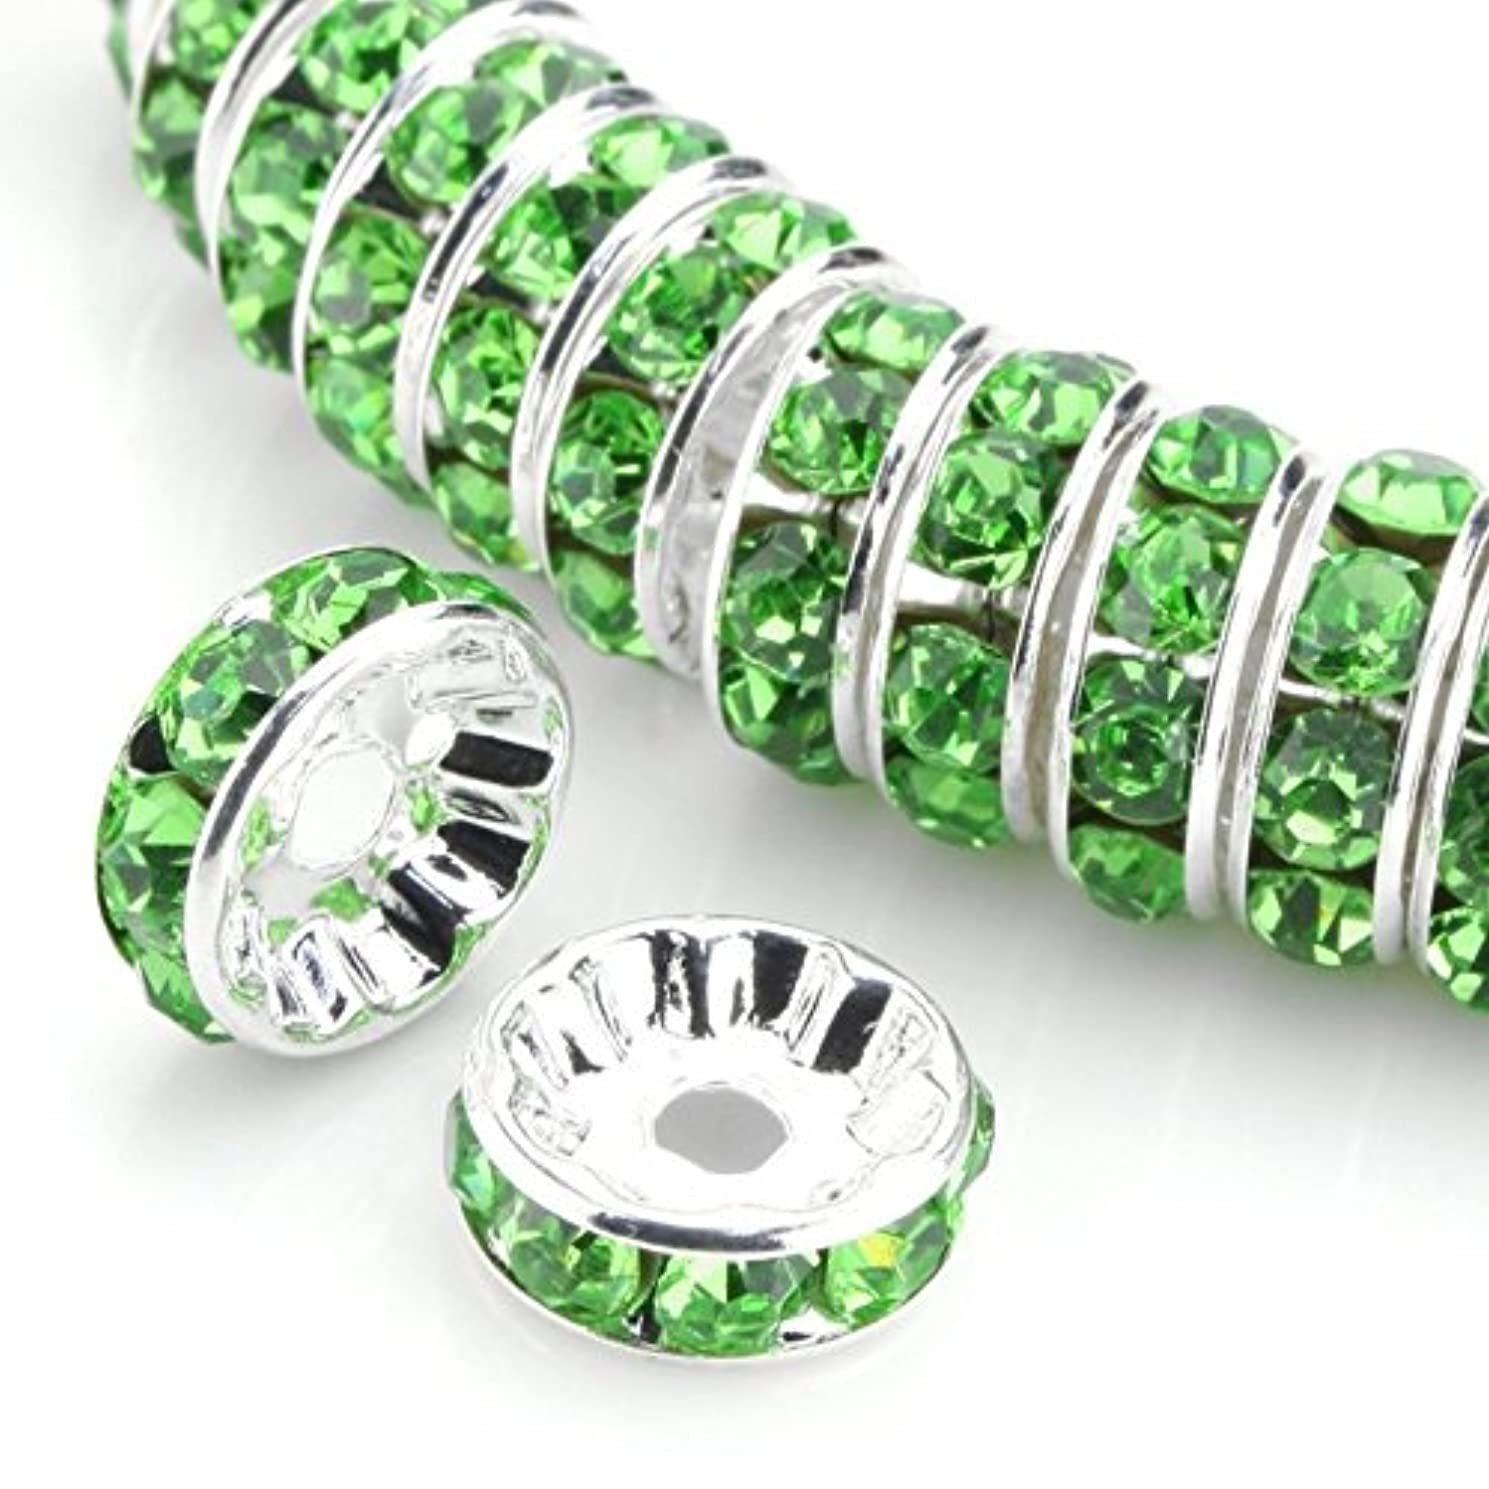 100pcs 8mm Top Quality Rhinestone Crystal Rondelle Spacers Loose Round Beads (Peridot green) Sterling Silver Plated Brass Metal CF1-816